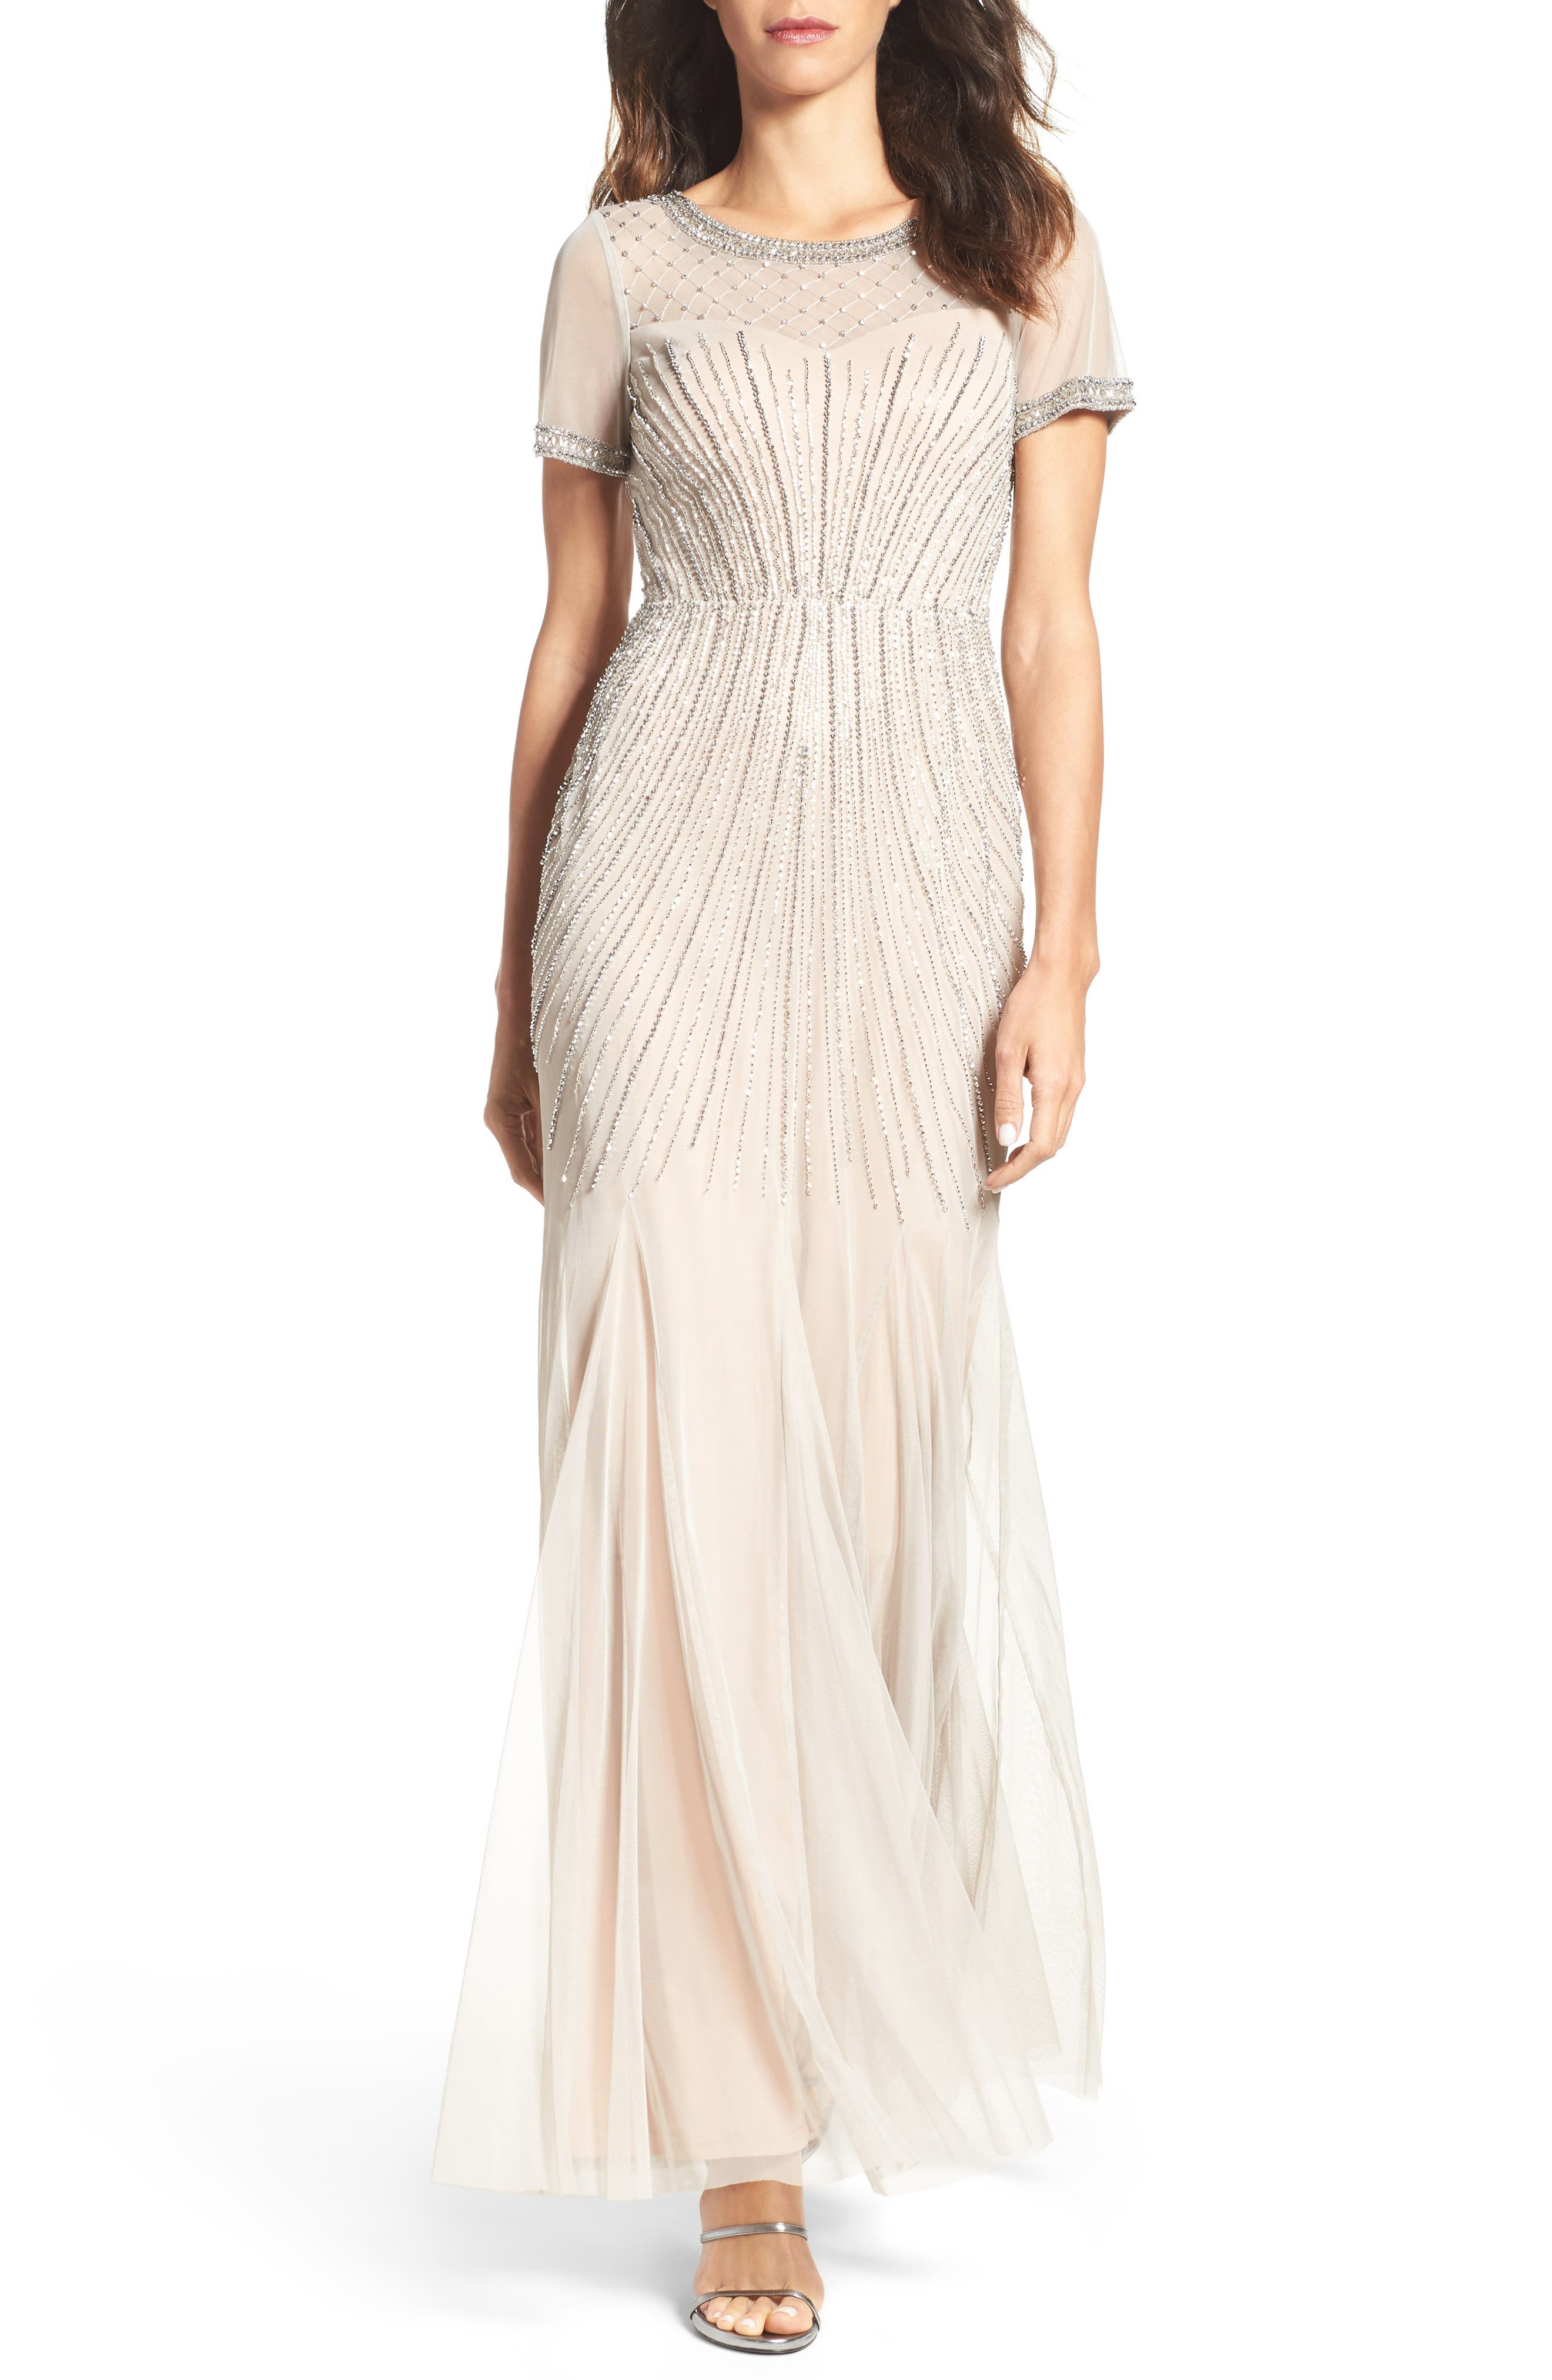 Main Image - Adrianna Papell Beaded Mesh Gown (Regular & Petite)